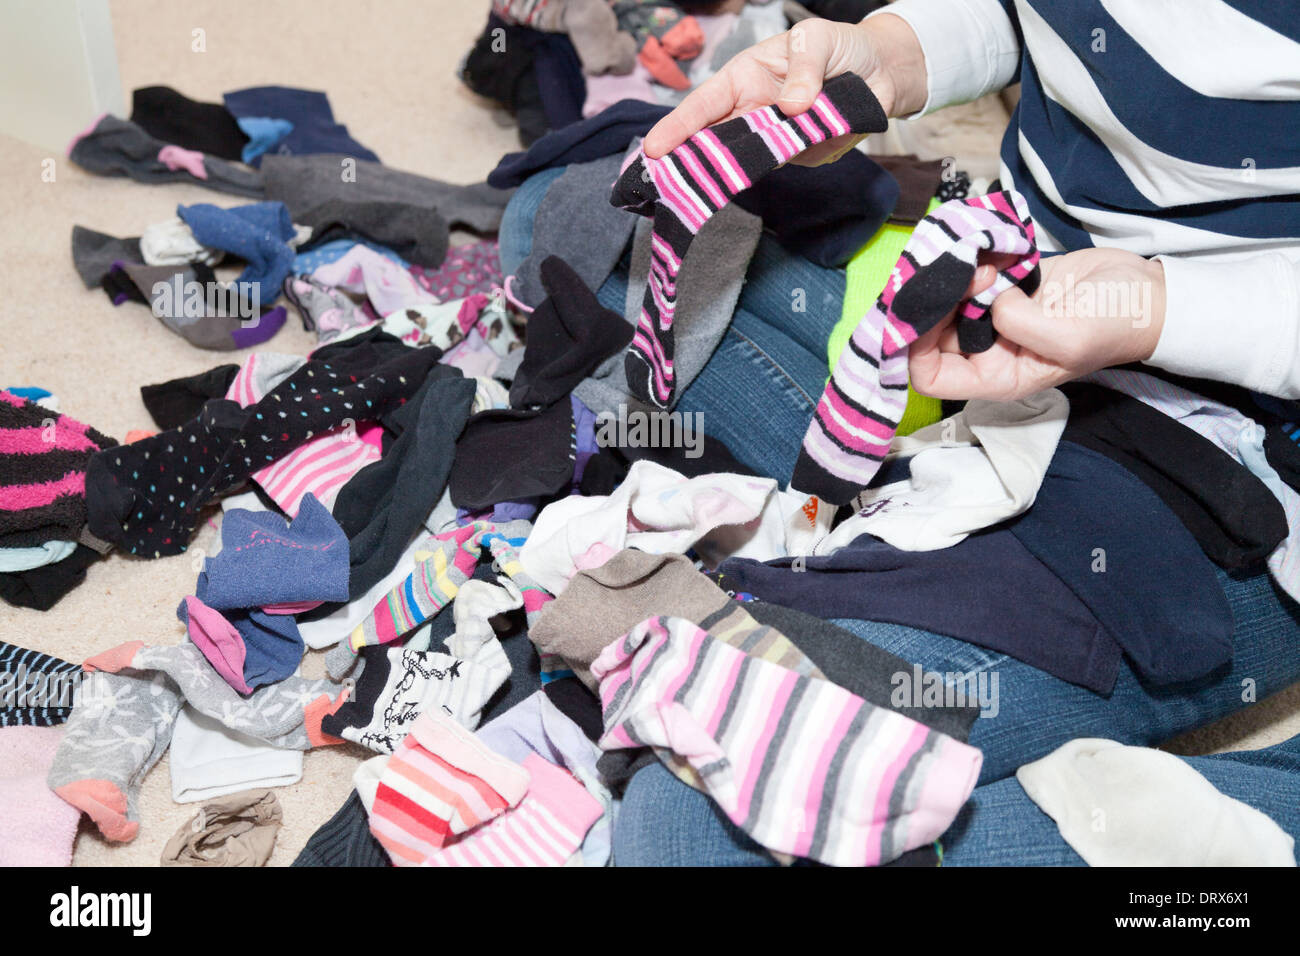 Sorting socks - a common household chore, UK - Stock Image